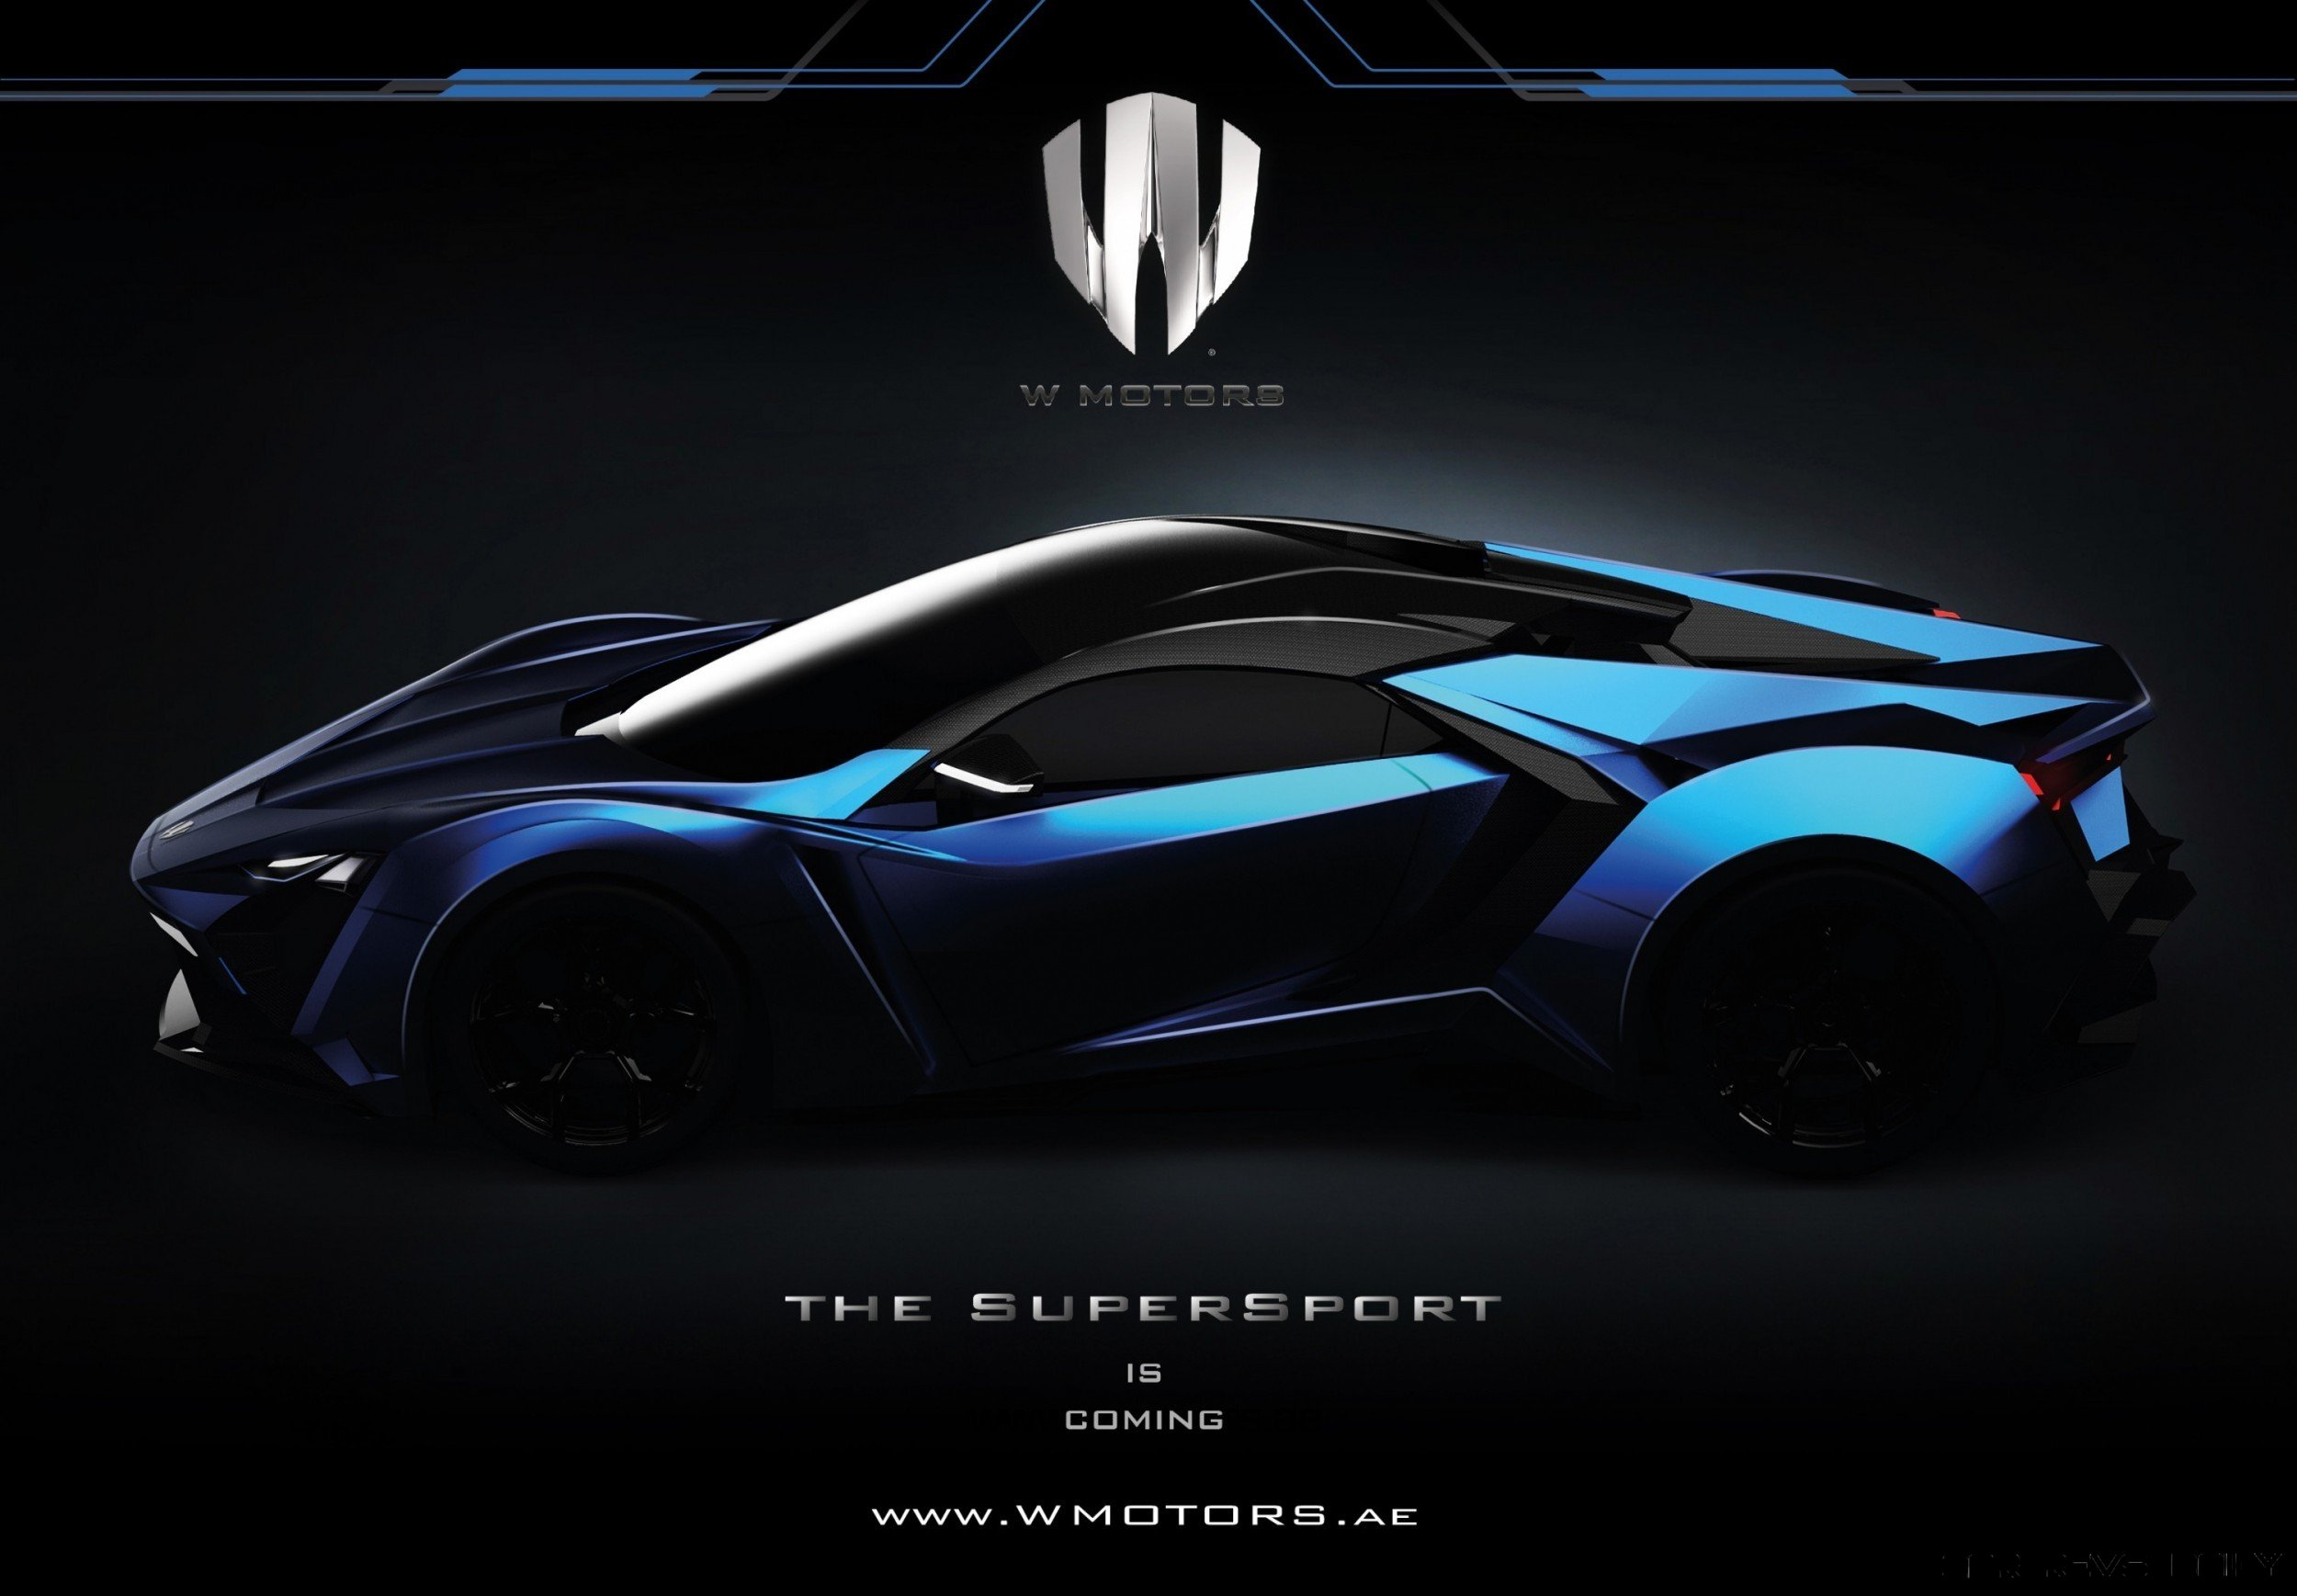 click to open largest resolution image - W Motors Supersport Limited Edition